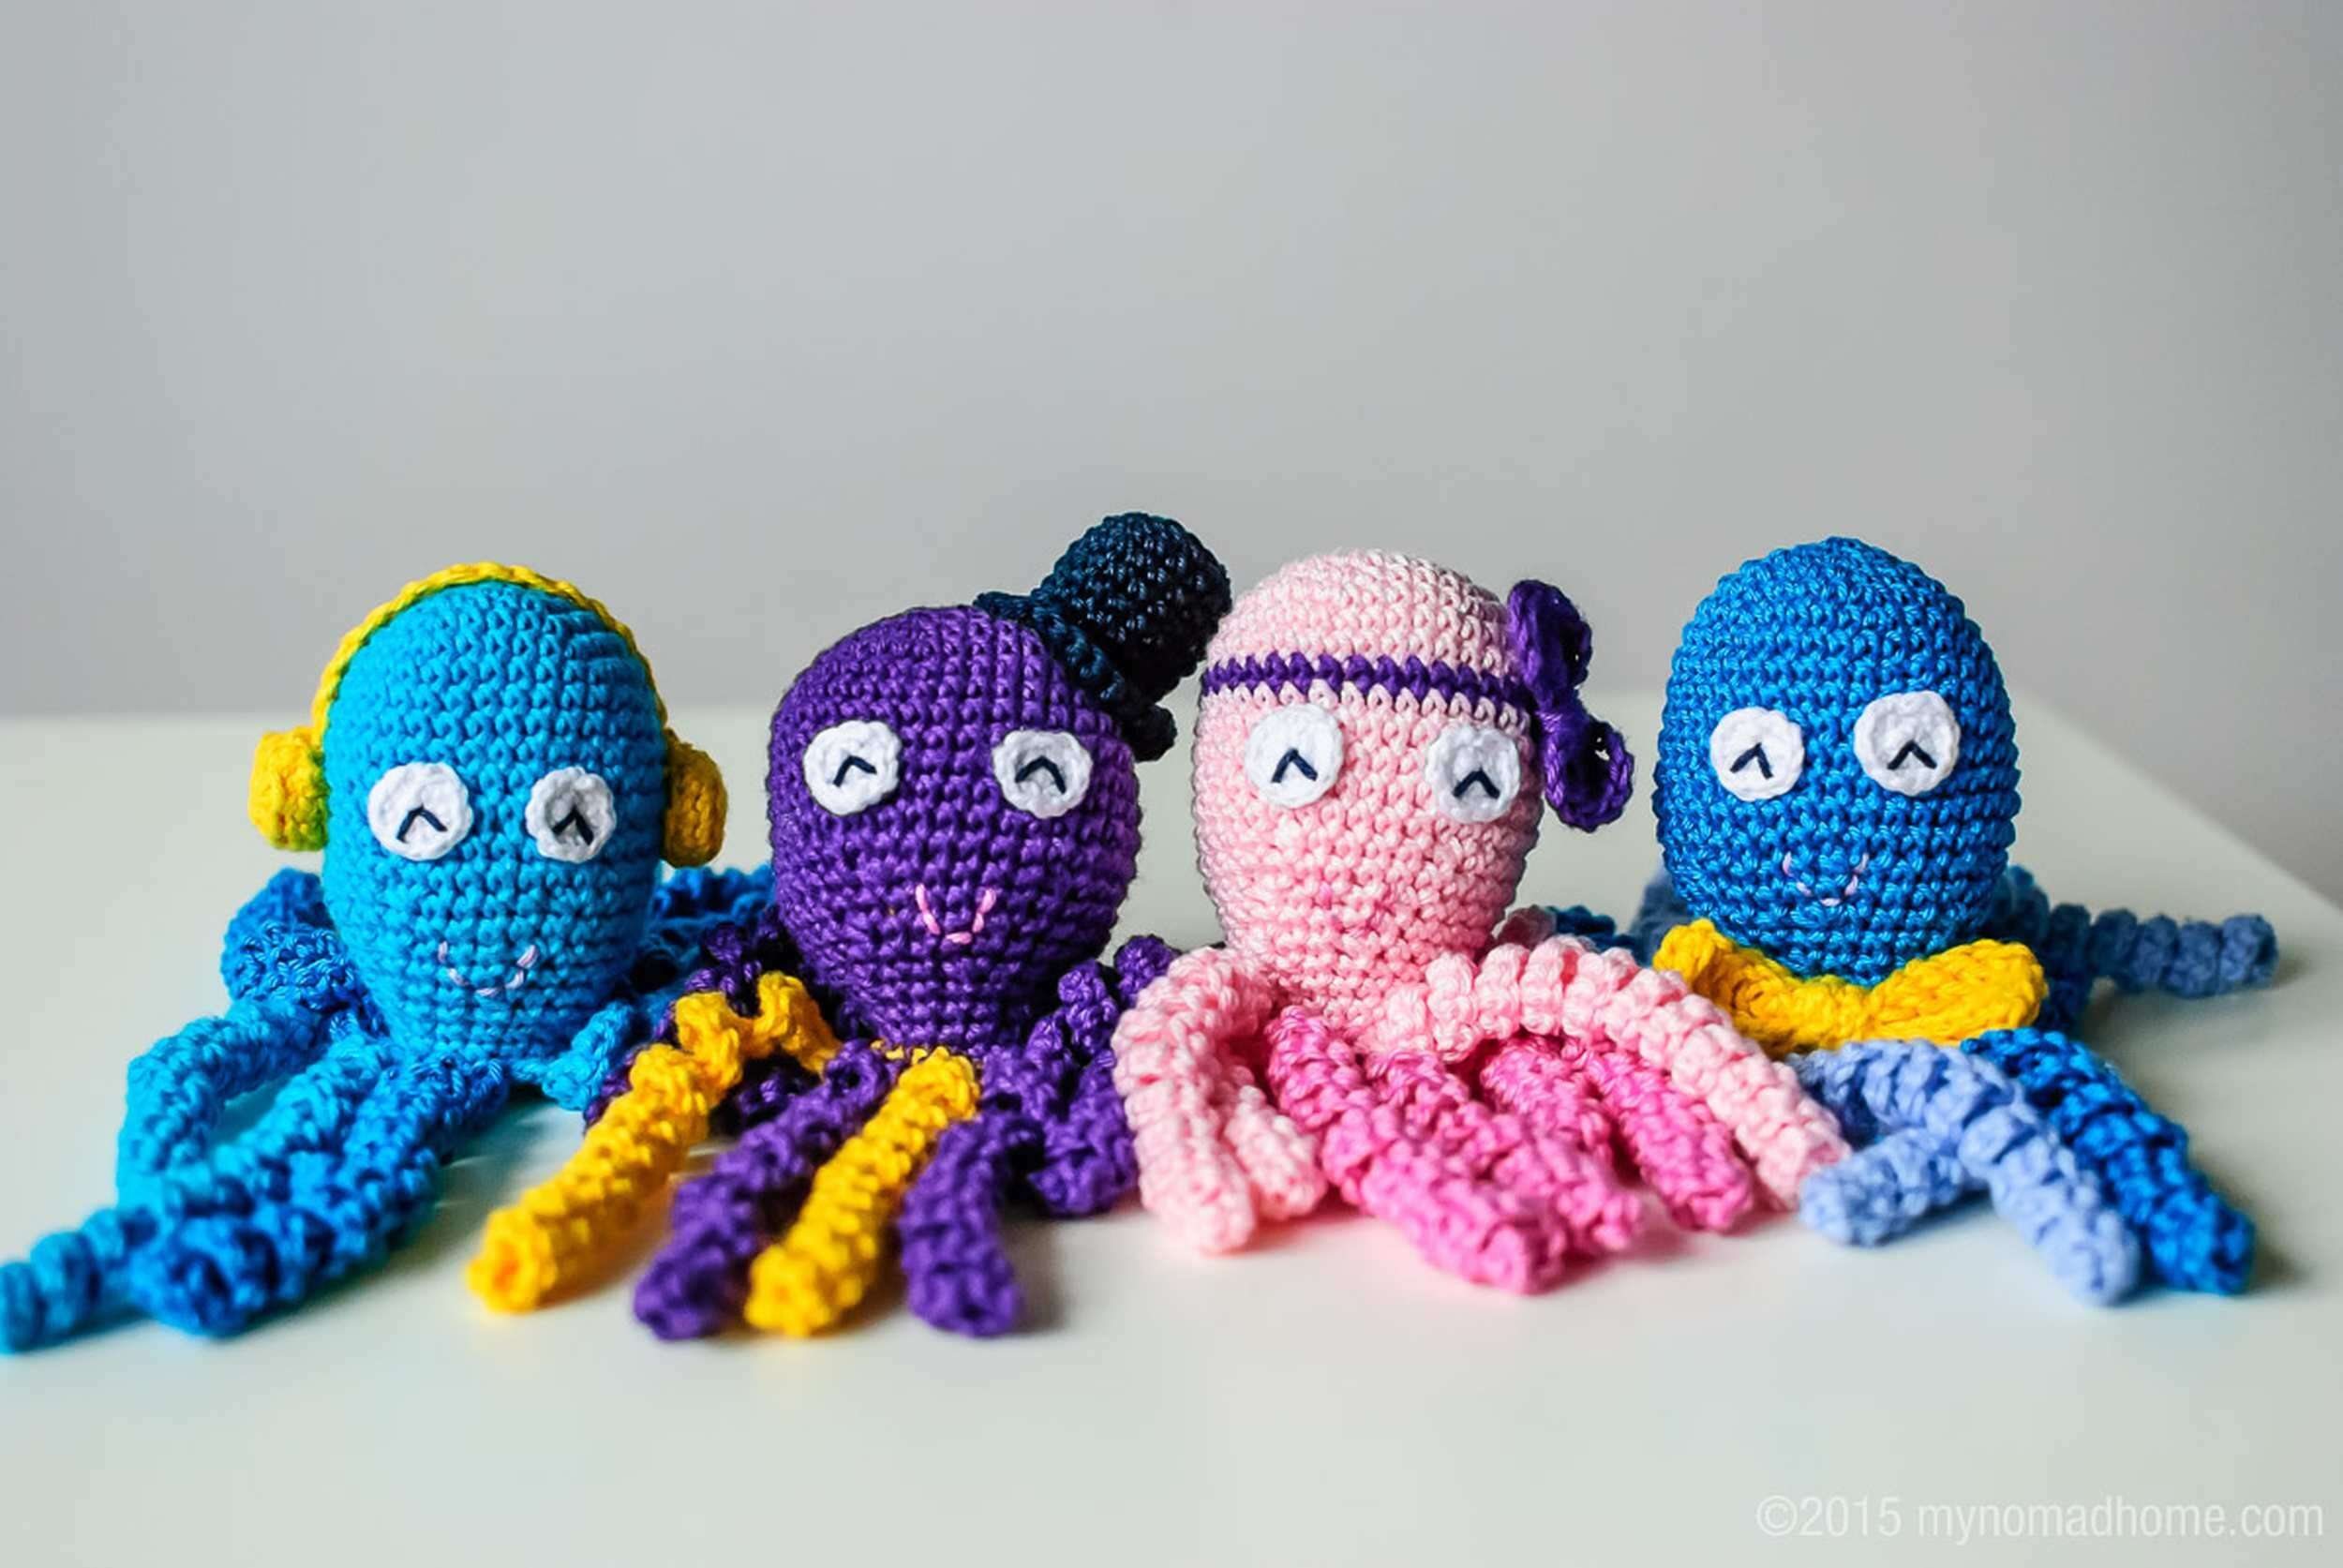 56+ Cool anad New Amigurumi Crochet Pattern Ideas for 2020 - Page ... | 1673x2500